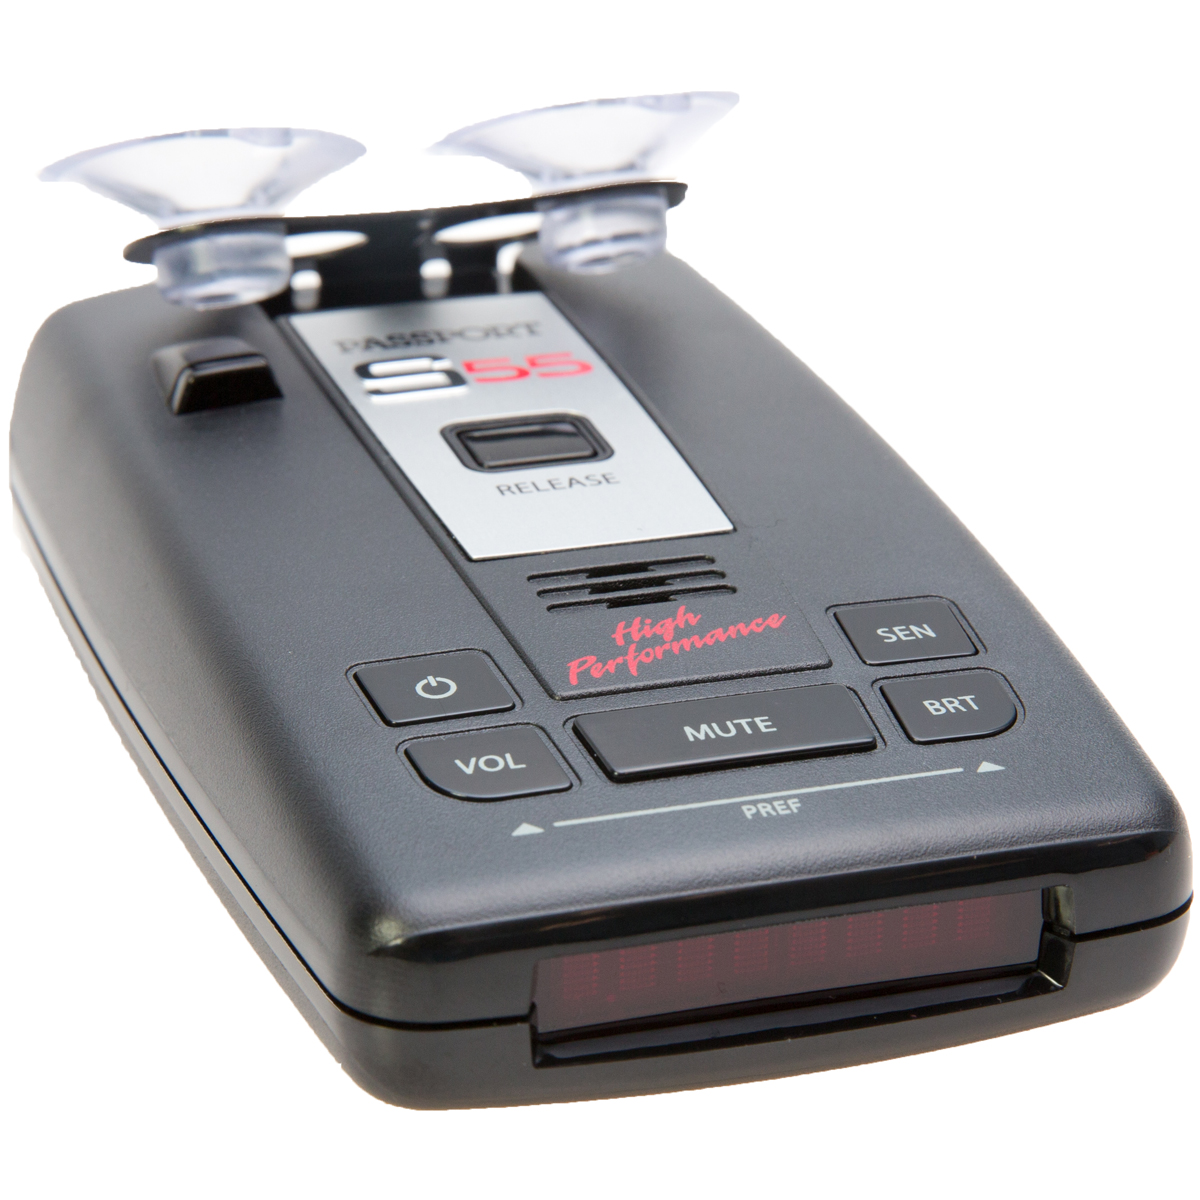 Passport Radar Detector >> Escort Passport S55 High Performance Pro Radar And Laser Detector W Dsp